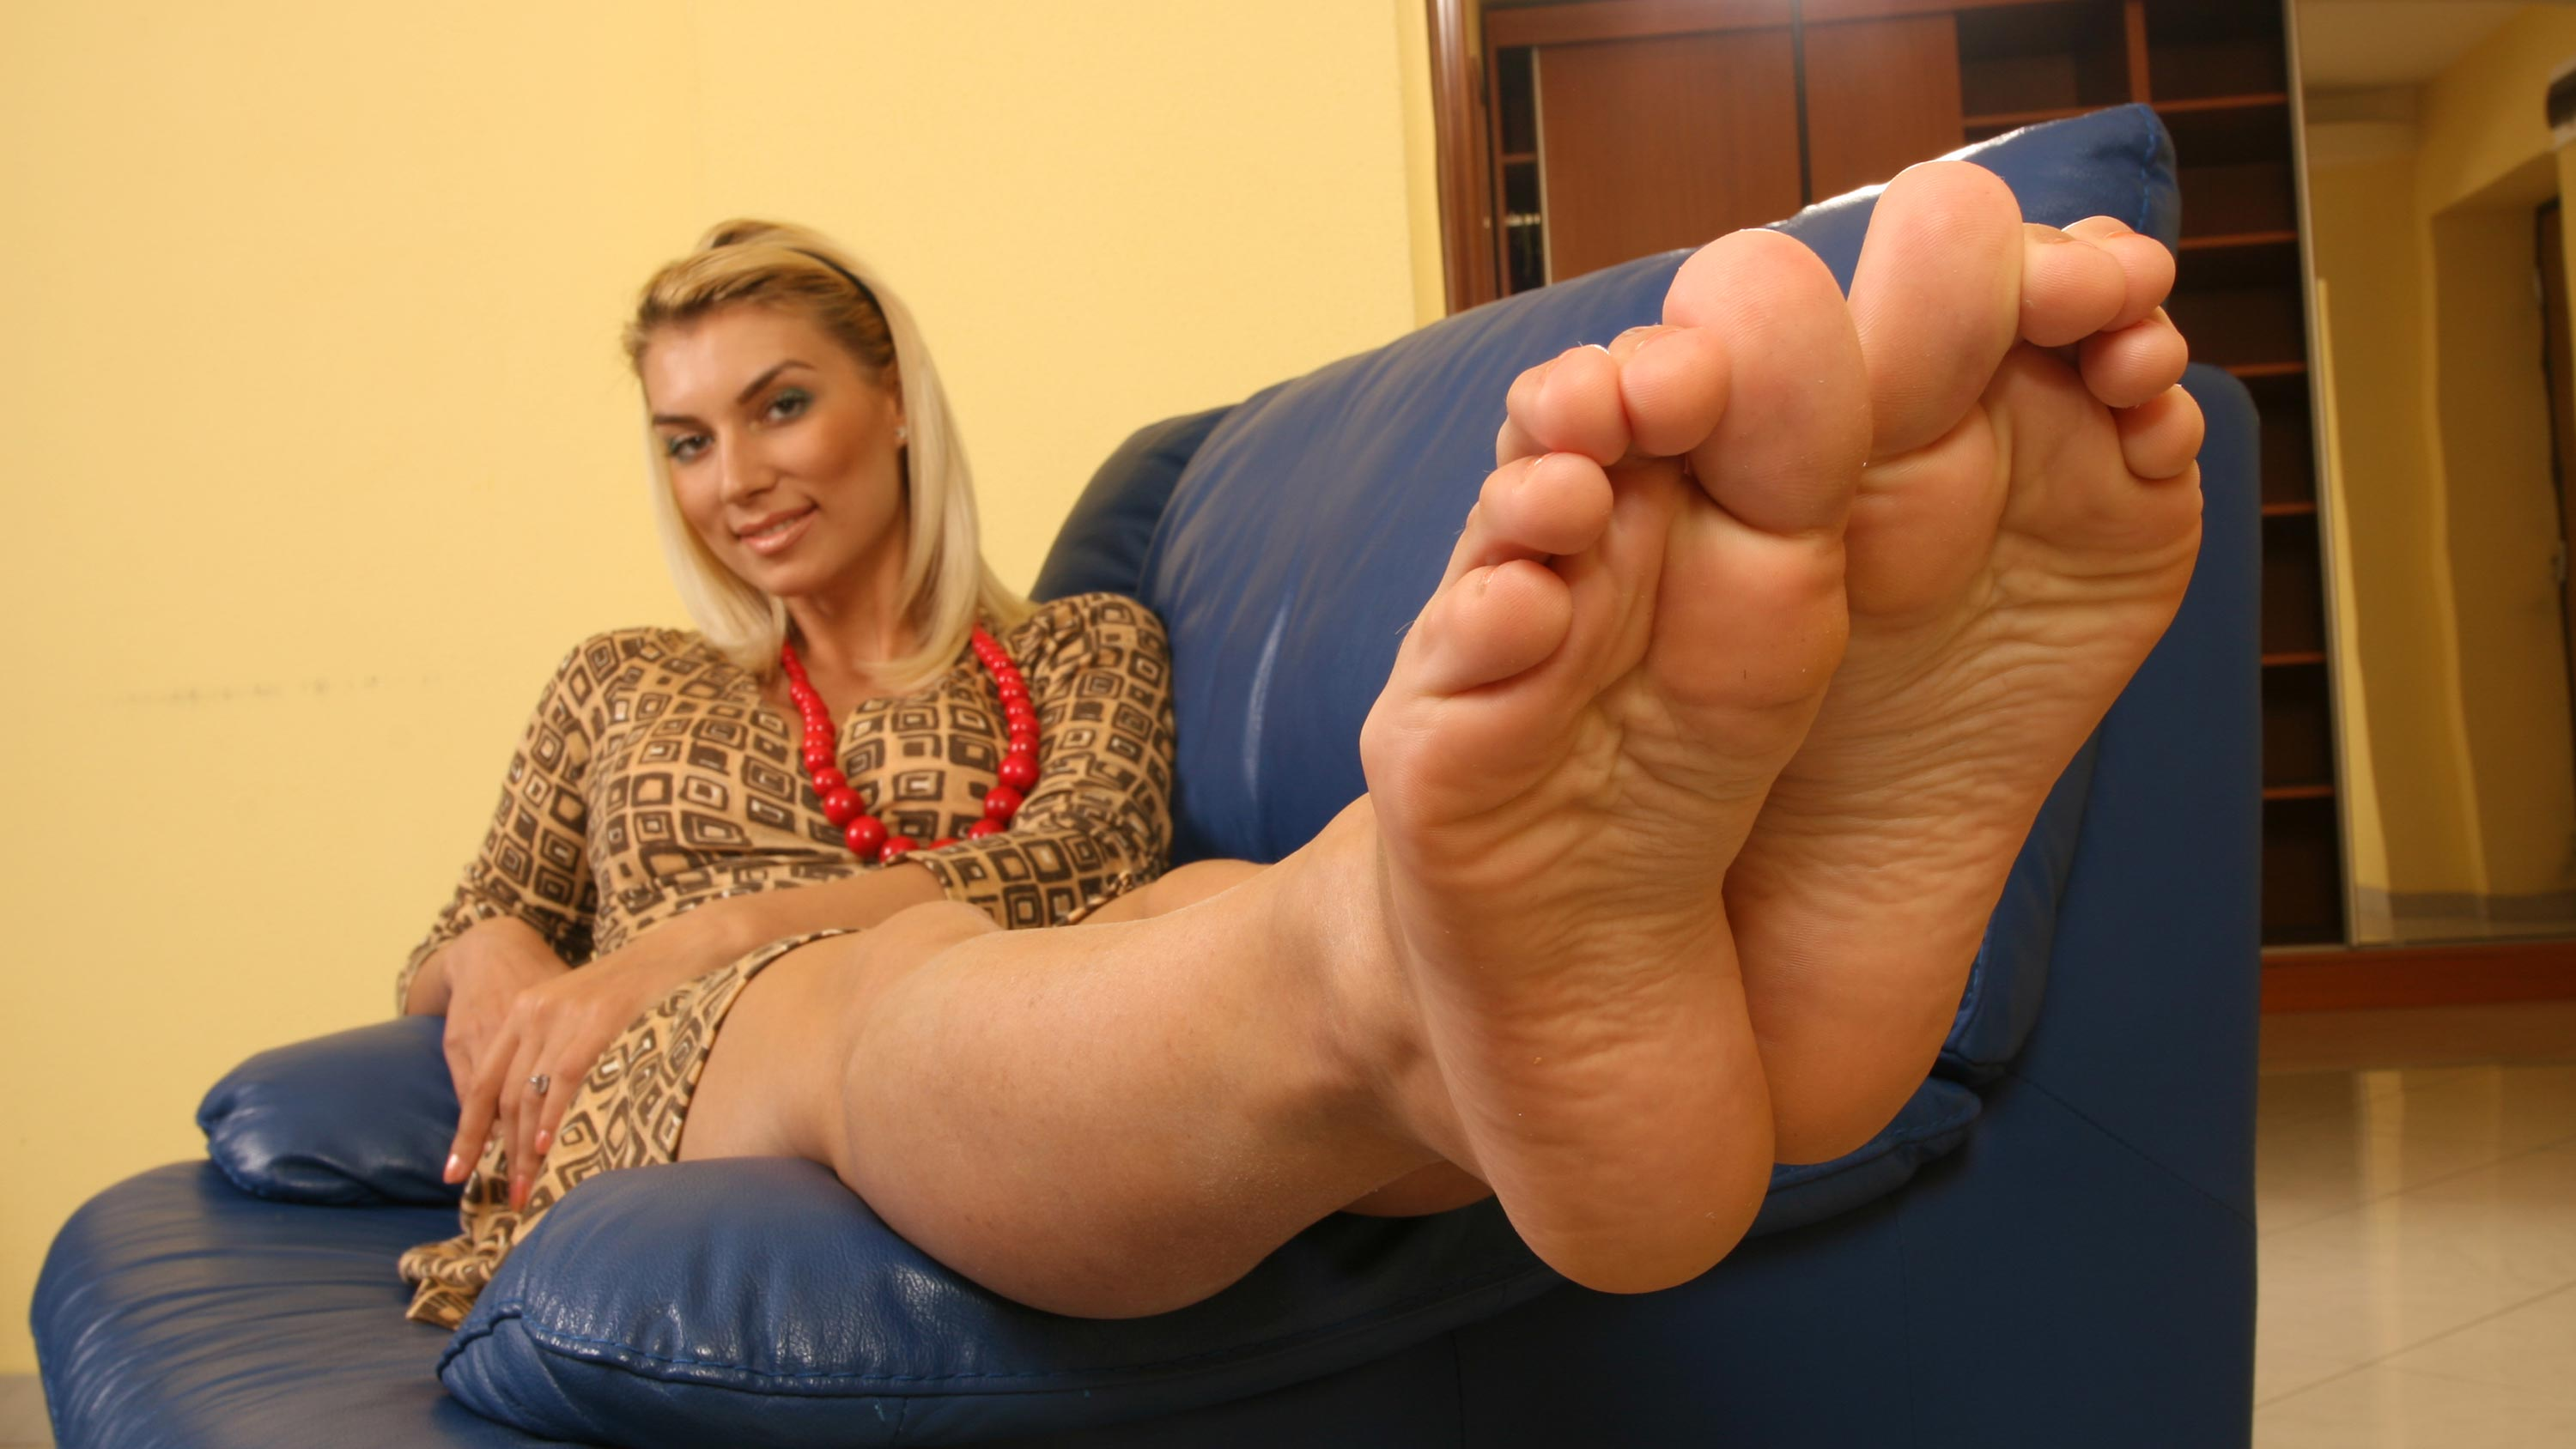 blonde-sexy-feet-in-water-free-threesome-raw-tube-movies